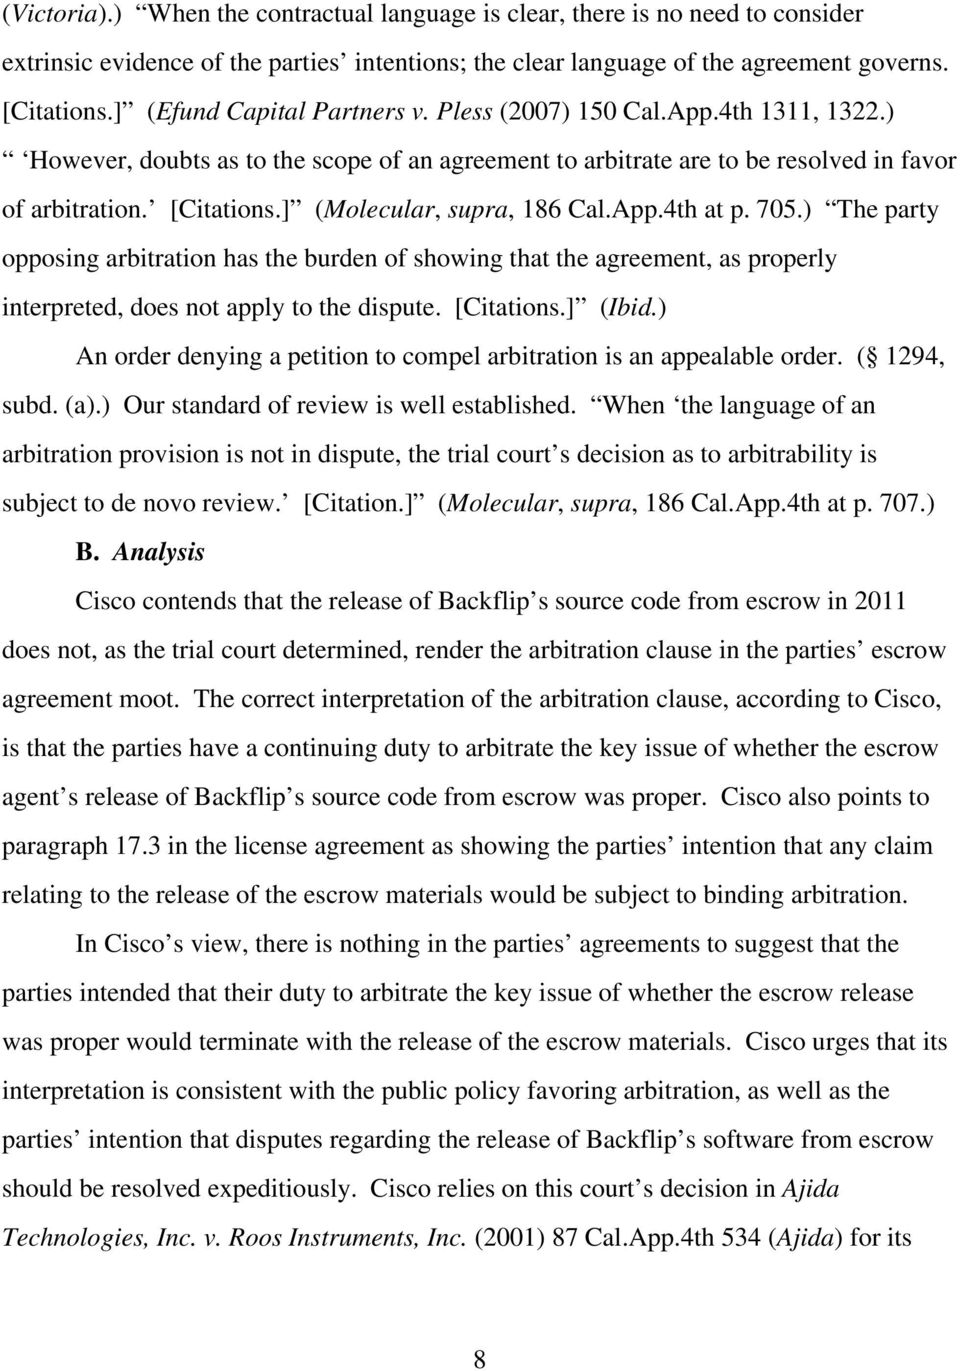 ] (Molecular, supra, 186 Cal.App.4th at p. 705.) The party opposing arbitration has the burden of showing that the agreement, as properly interpreted, does not apply to the dispute. [Citations.